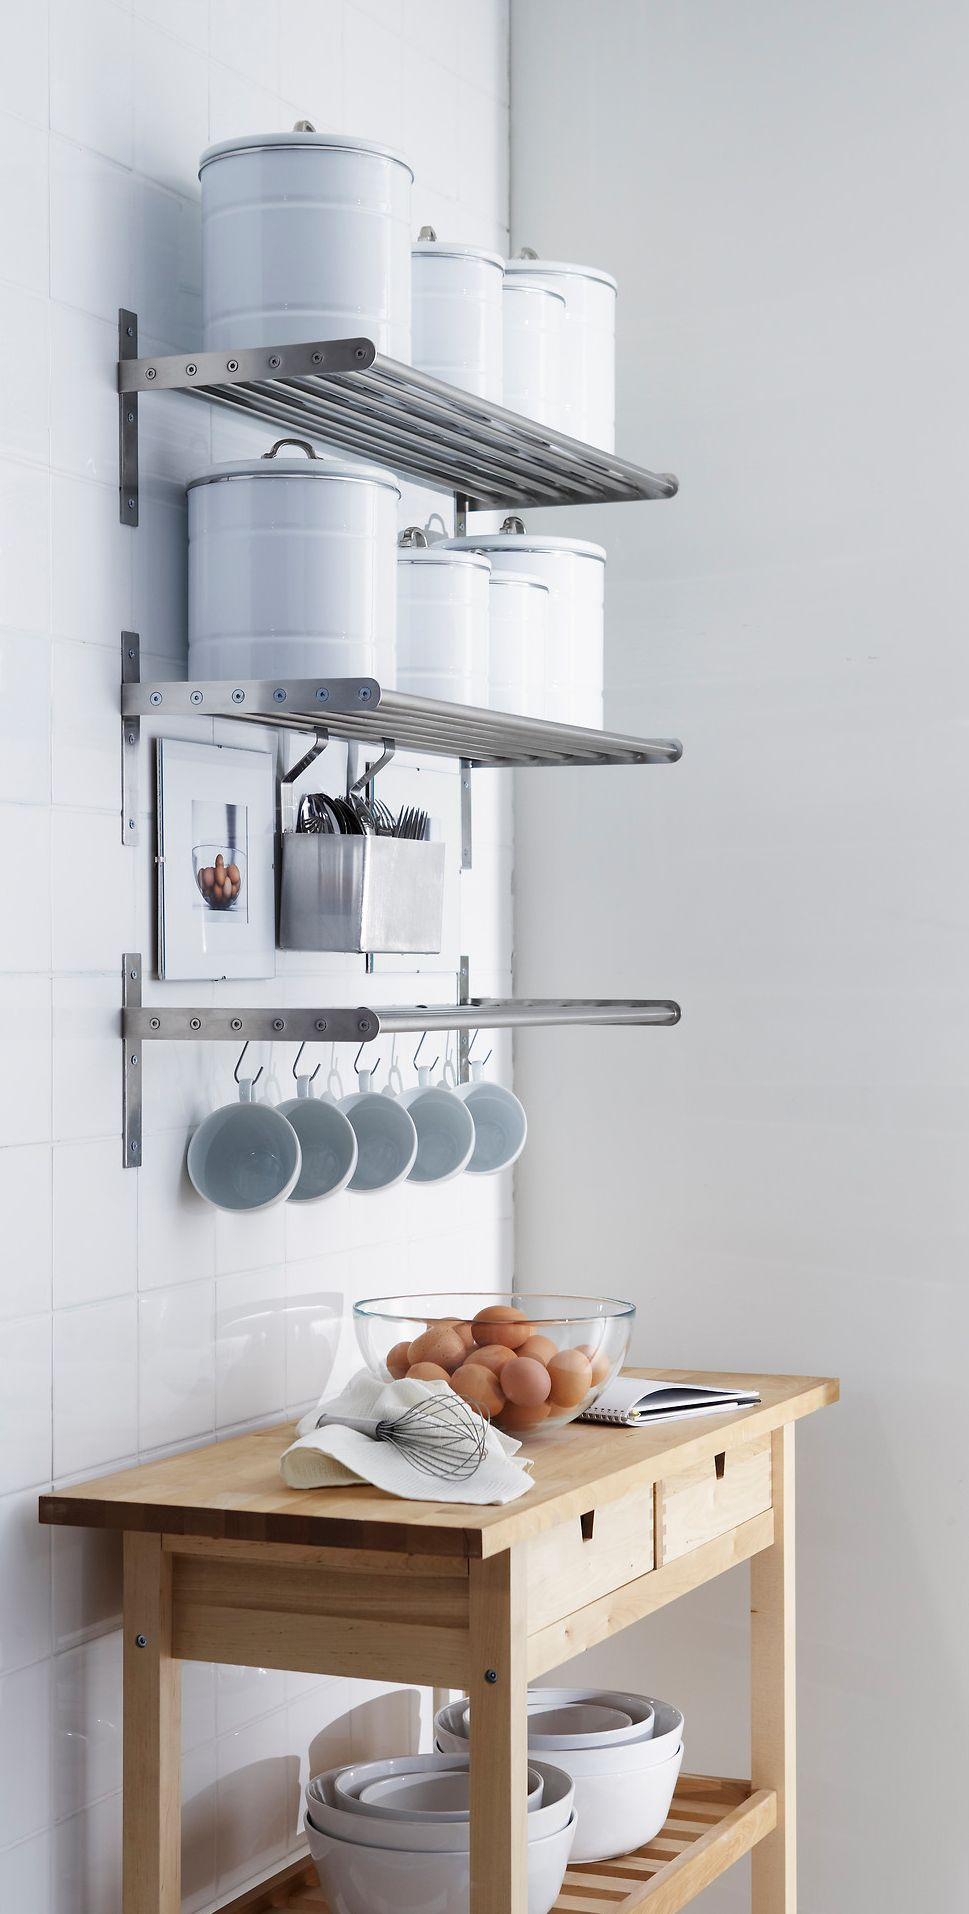 Ordinaire 65 Ingenious Kitchen Organization Tips And Storage Ideas